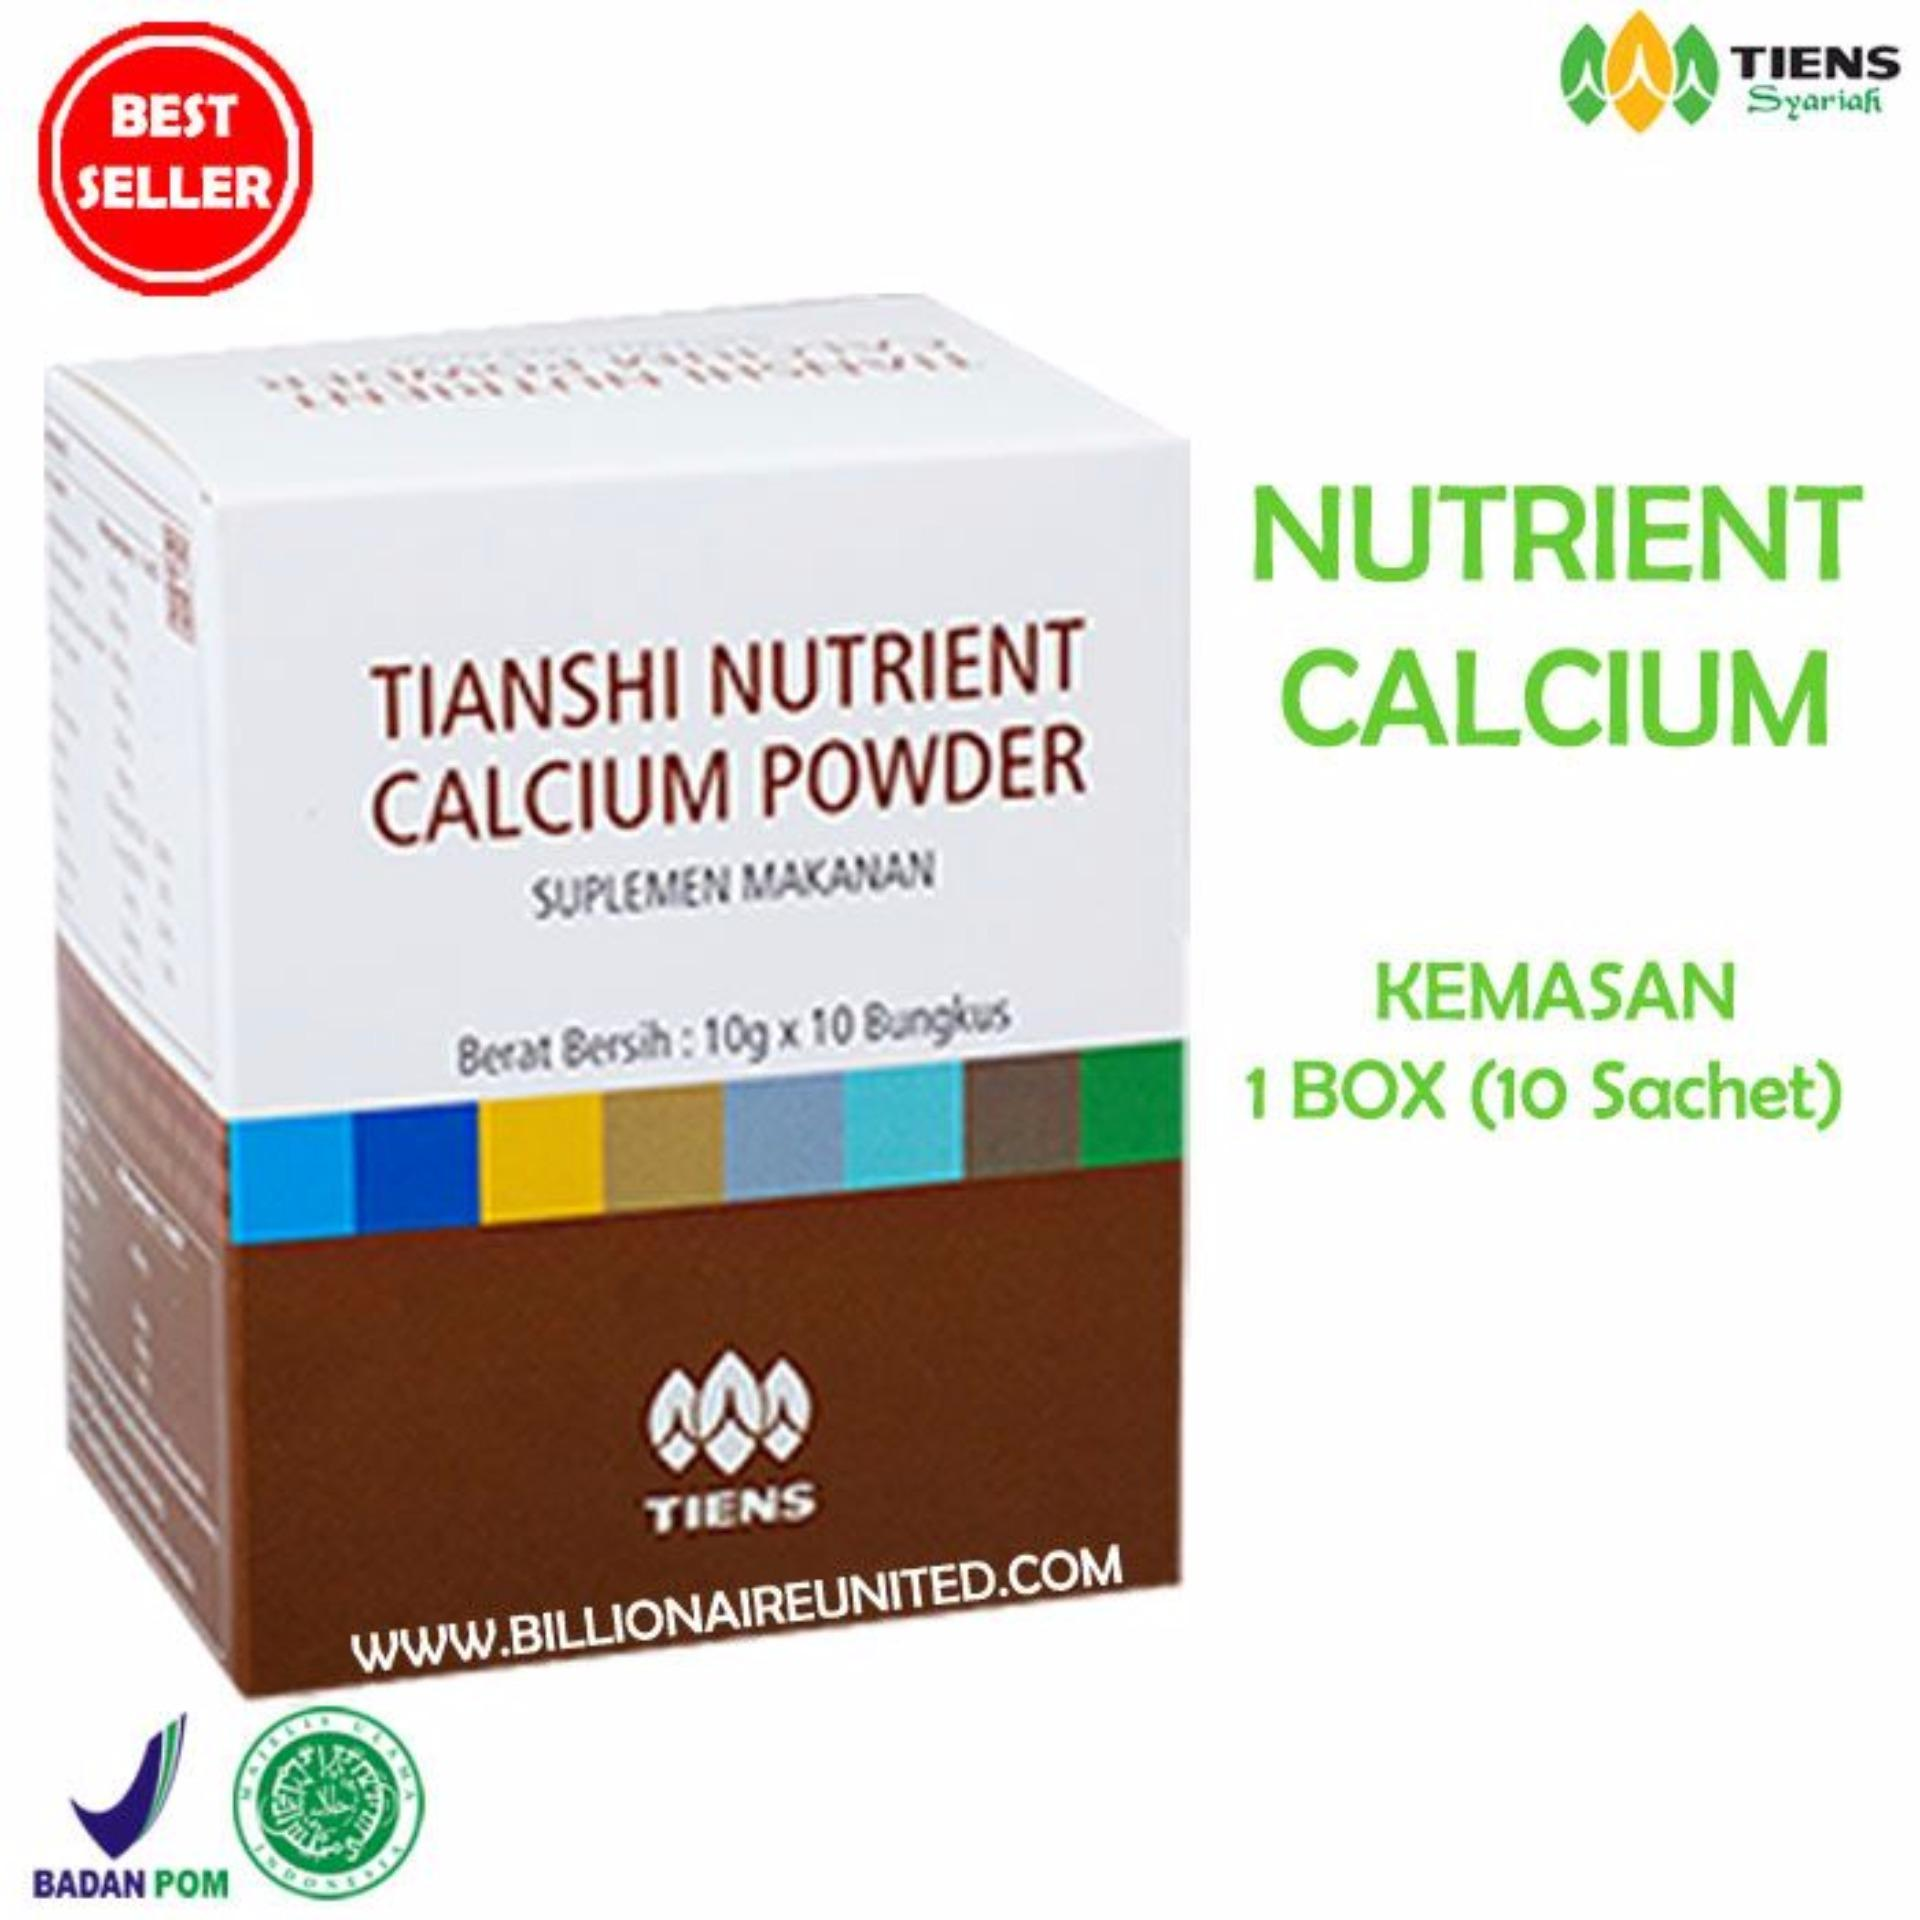 Jual Promo Best Seller Tiens Nhcp Nutrient Hight Calcium Powder Kalsium Terbaik Dunia Di Indonesia